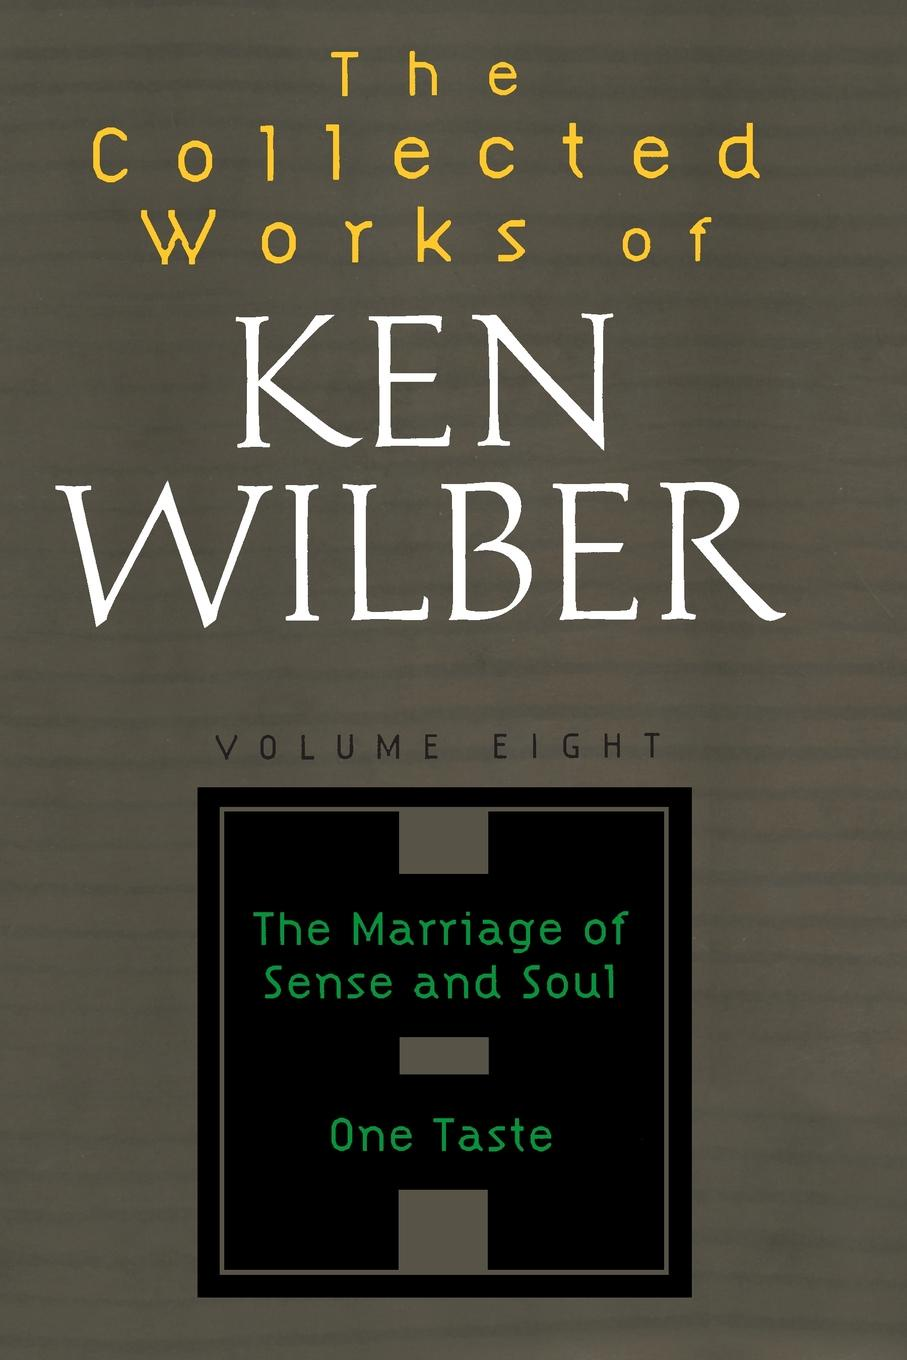 Ken Wilber The Collected Works of Wilber, Volume 8